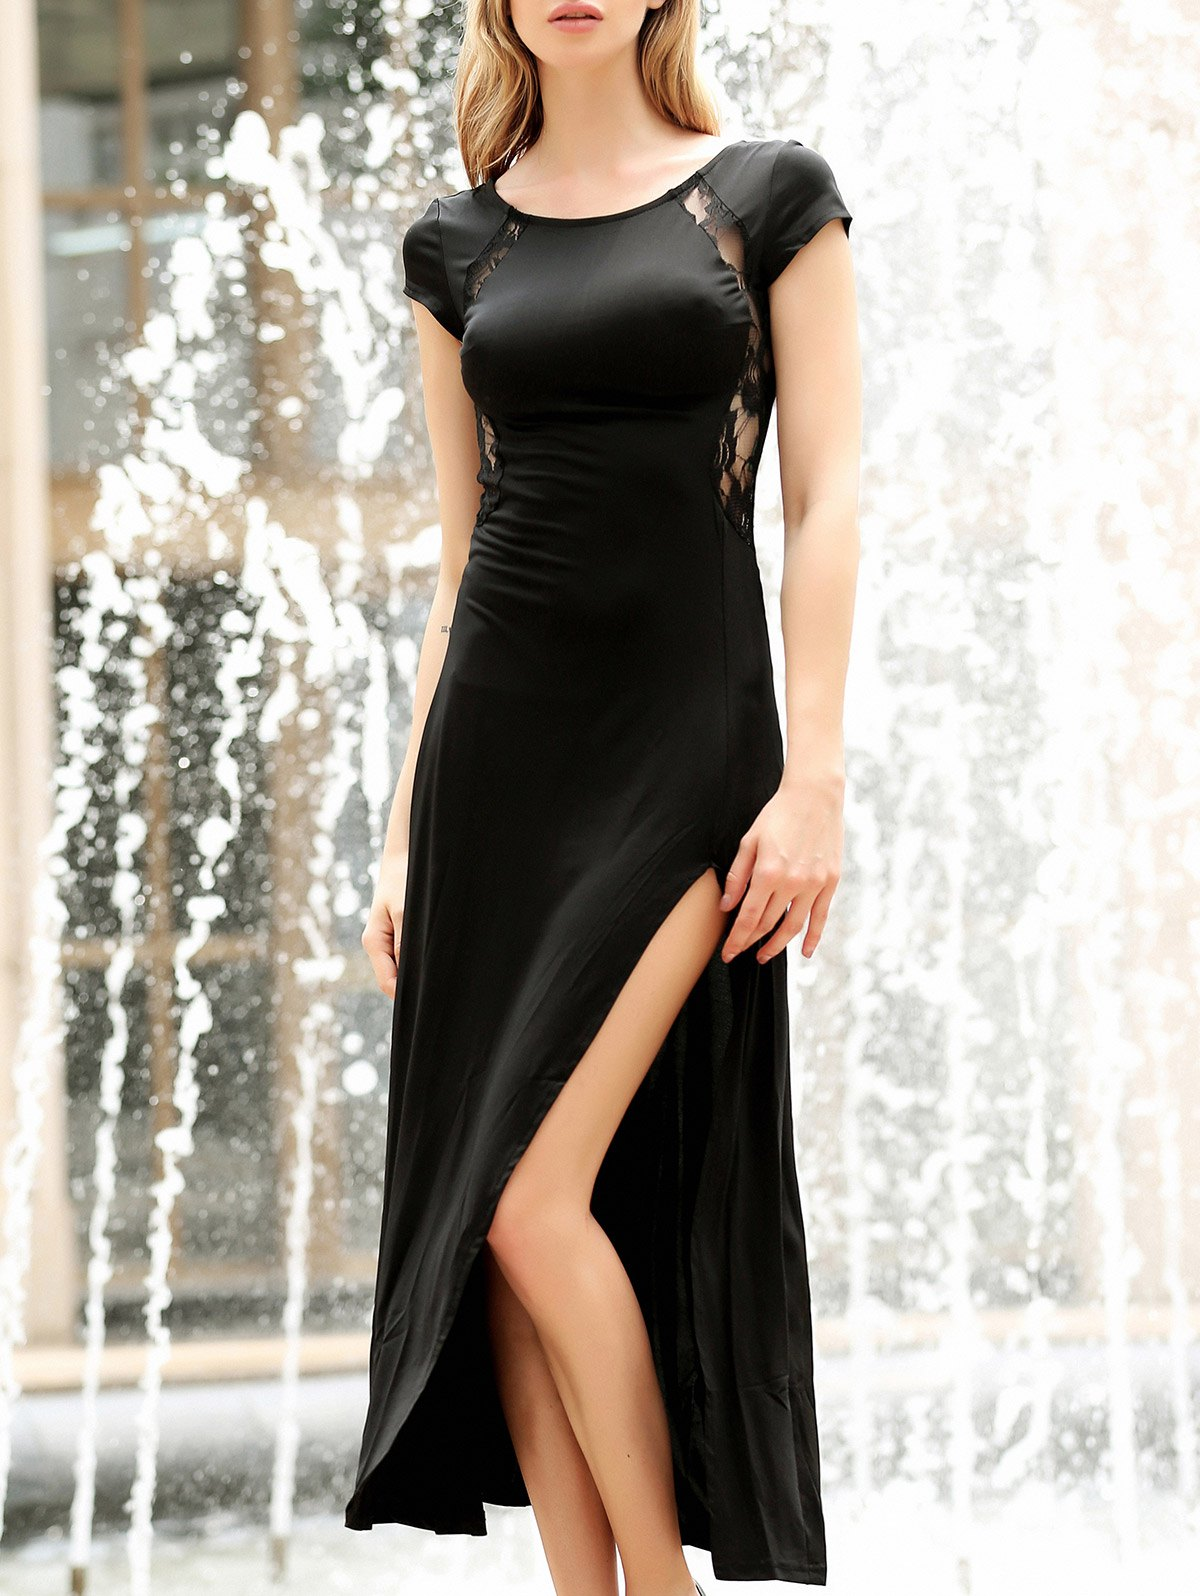 Women's Charming Solid Color Side Furcal Lace Splicing Sleeveless Bodycon Dress - BLACK L